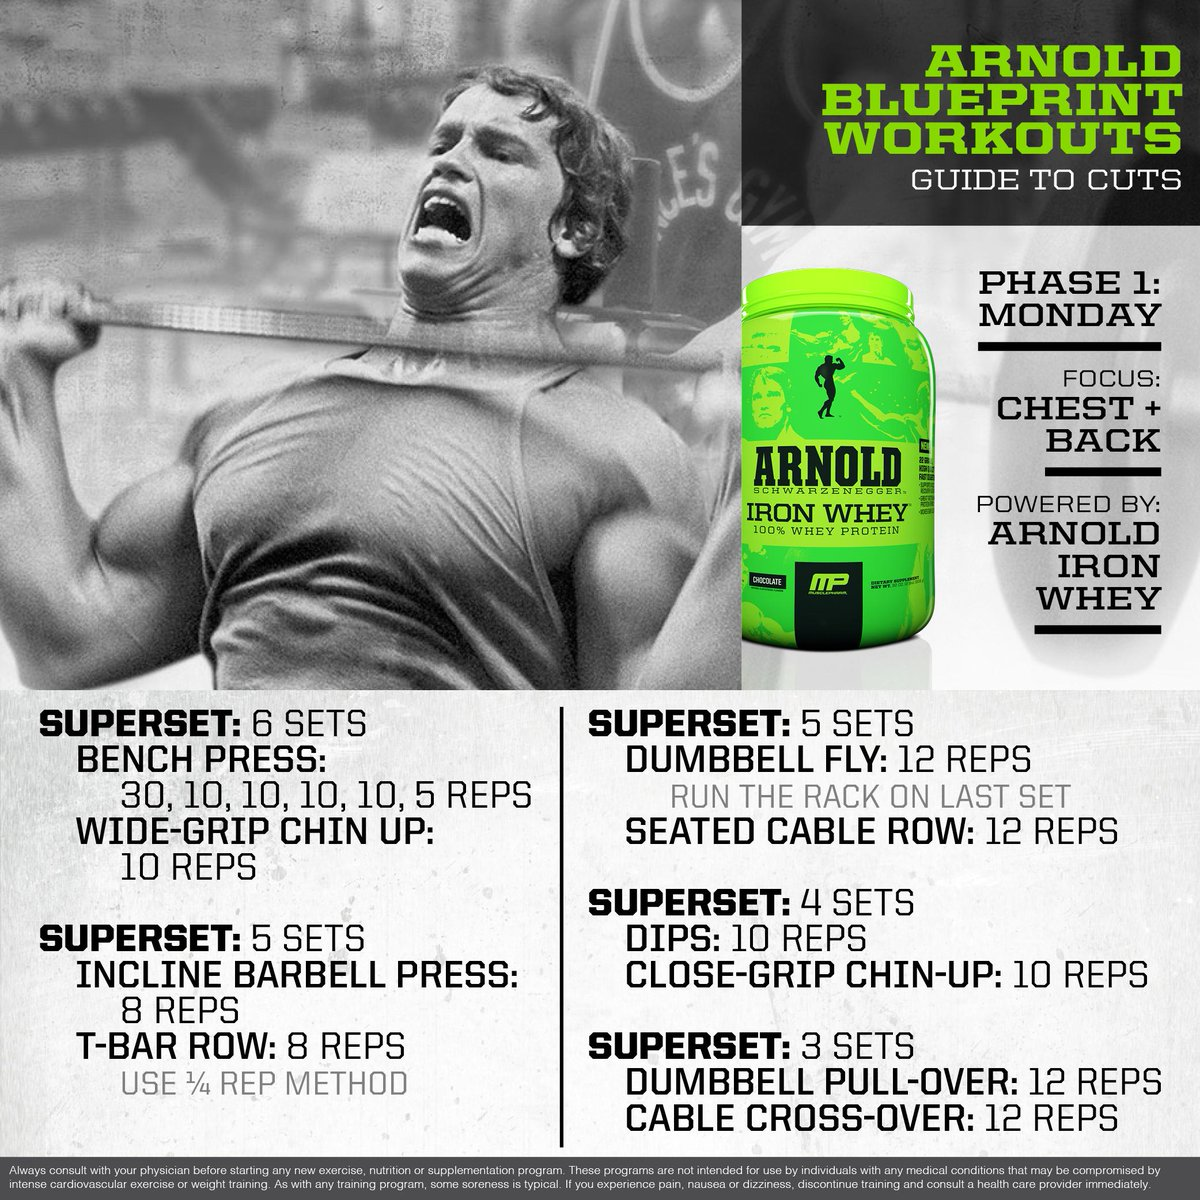 Musclepharm on twitter mp workout of the day arnold arnold schwarzenegger blueprint to cut chest and back workout powered by ironwhey httptudd1uvcjdv malvernweather Image collections